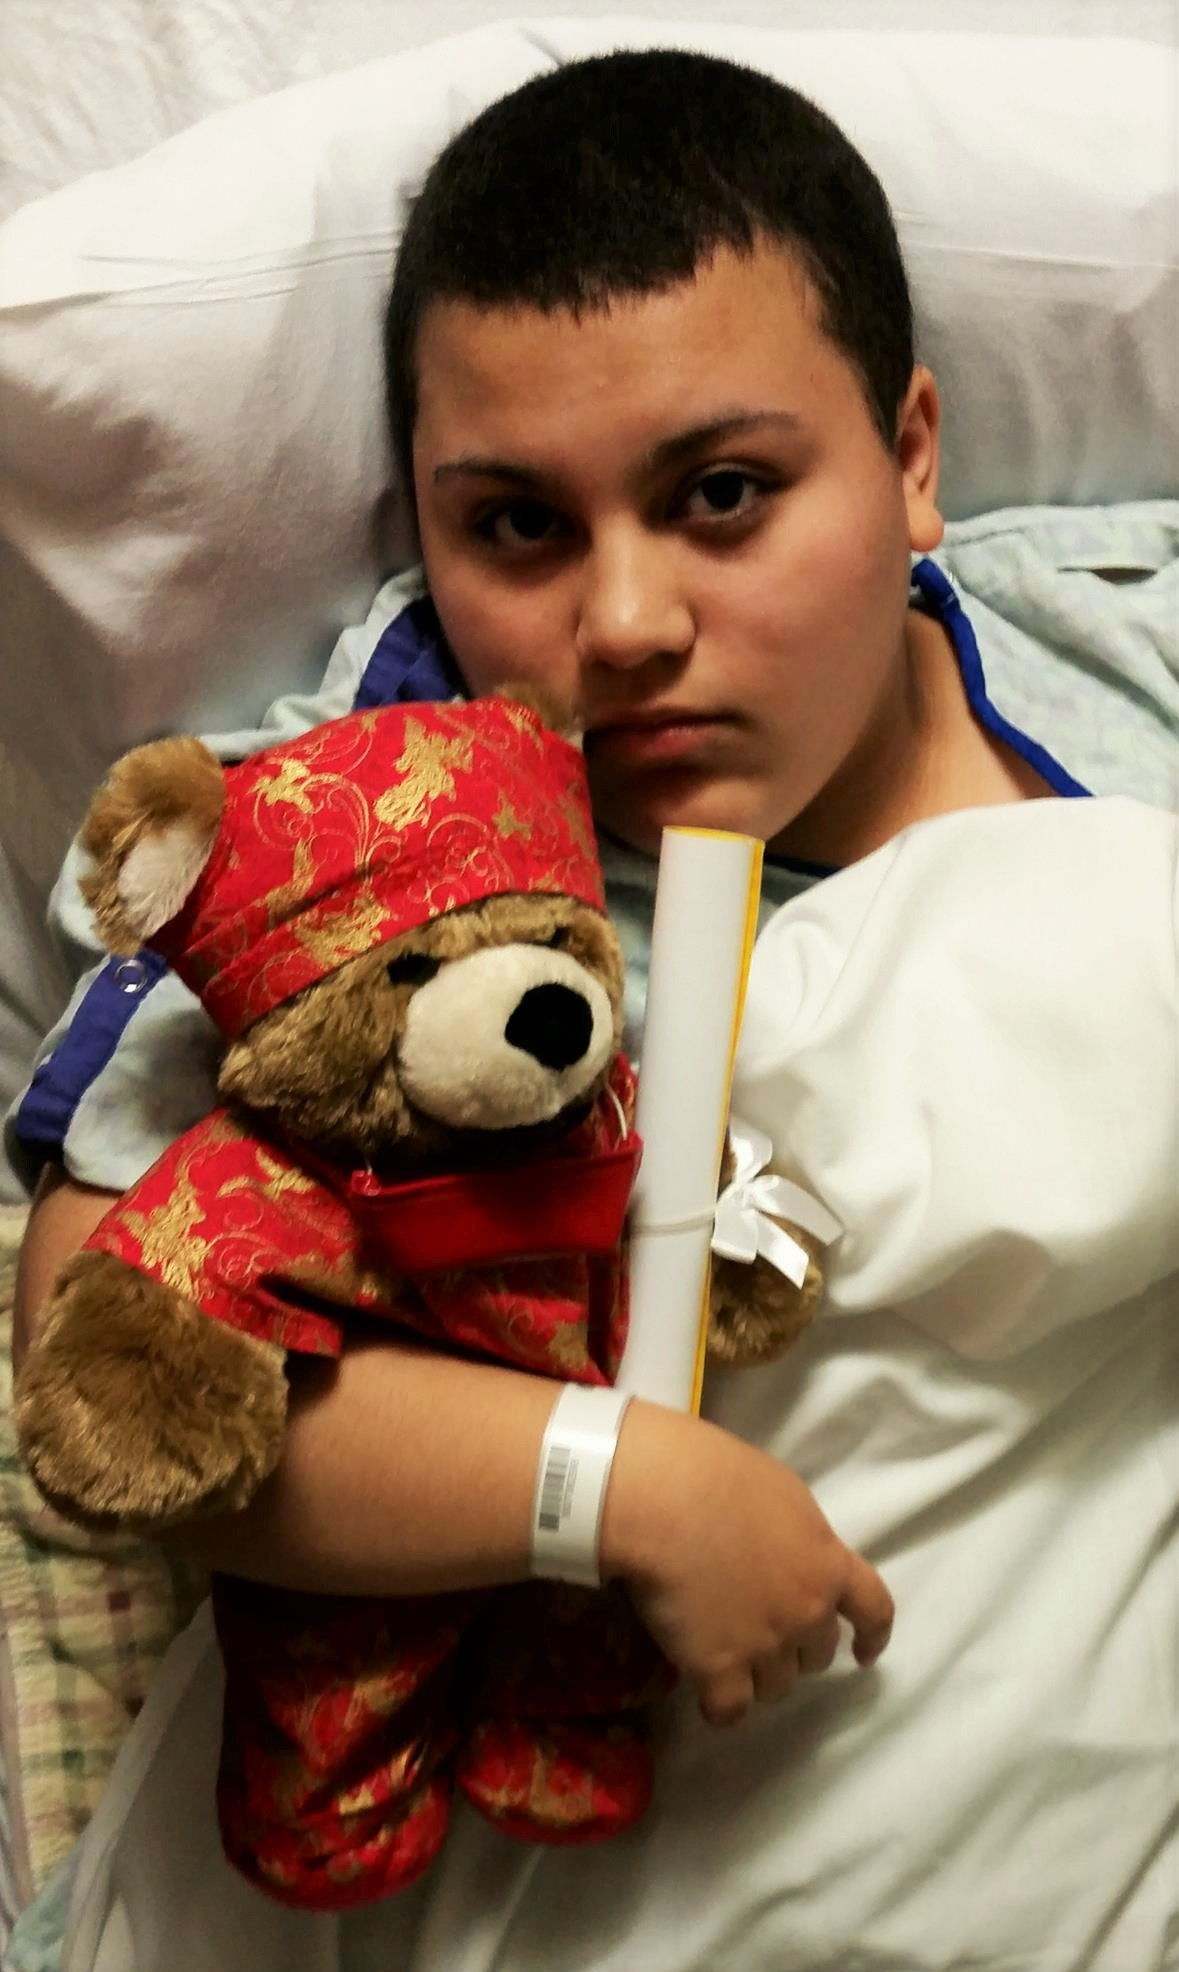 Heading into surgery with her Surgery Build A Bear from her Surgeon...  His name is Zan (meaning providing support)